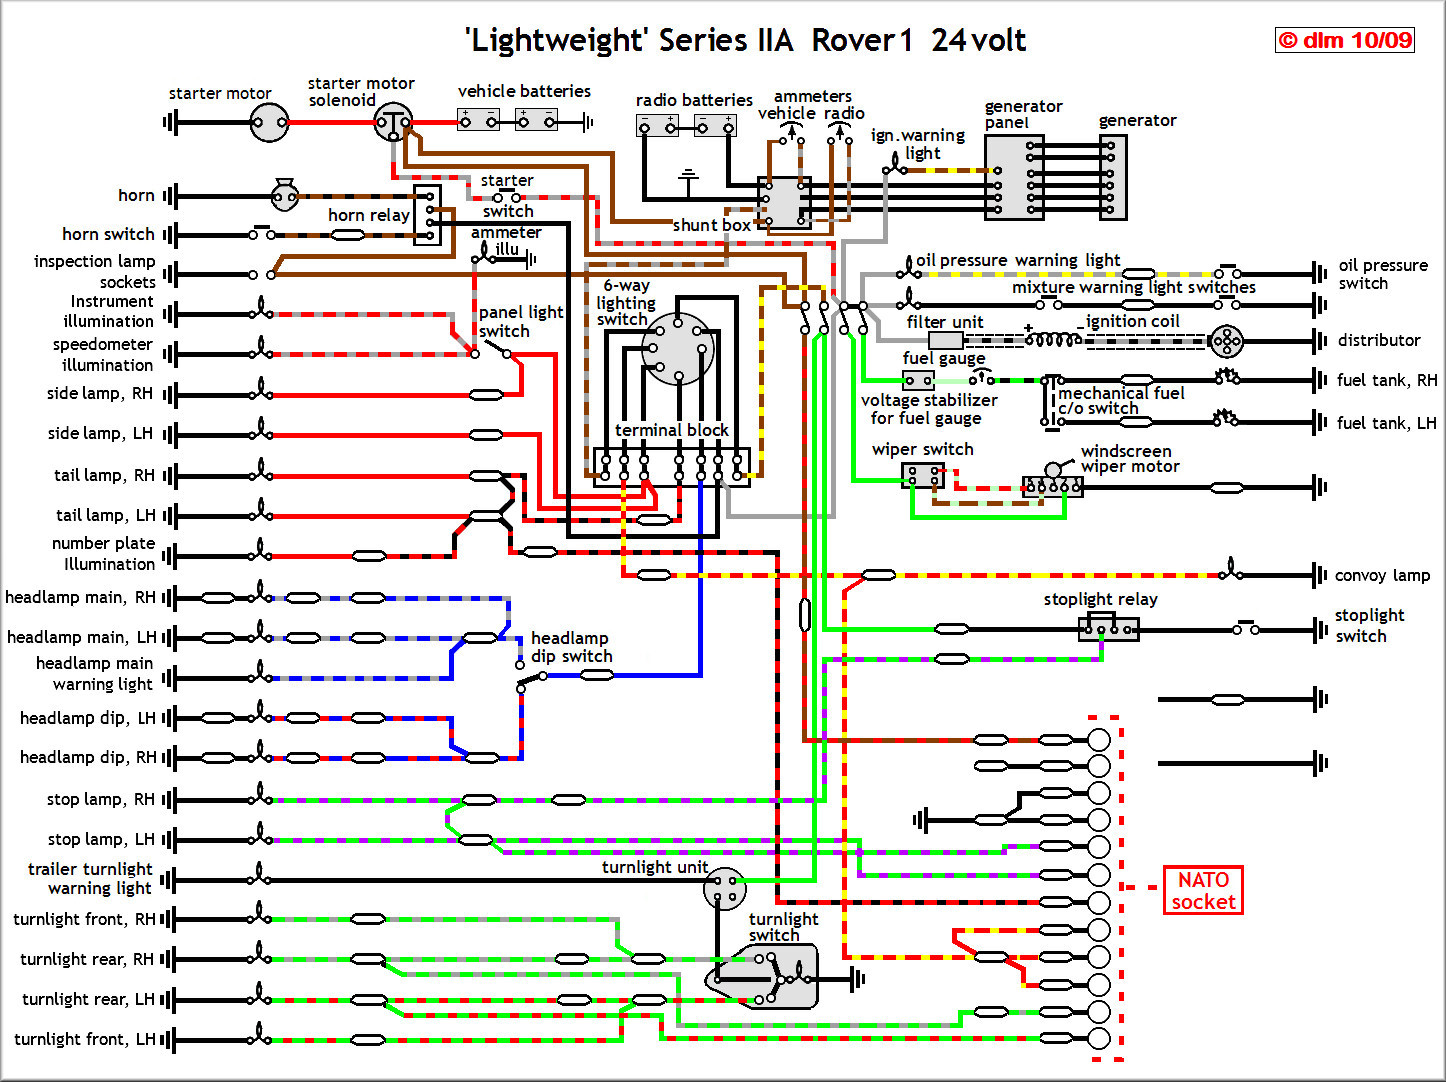 Land Rover 24v Wiring Diagram List Of Schematic Circuit Alarm Installation Diagrams Chevrolet Express Lightweight Rh Co Uk